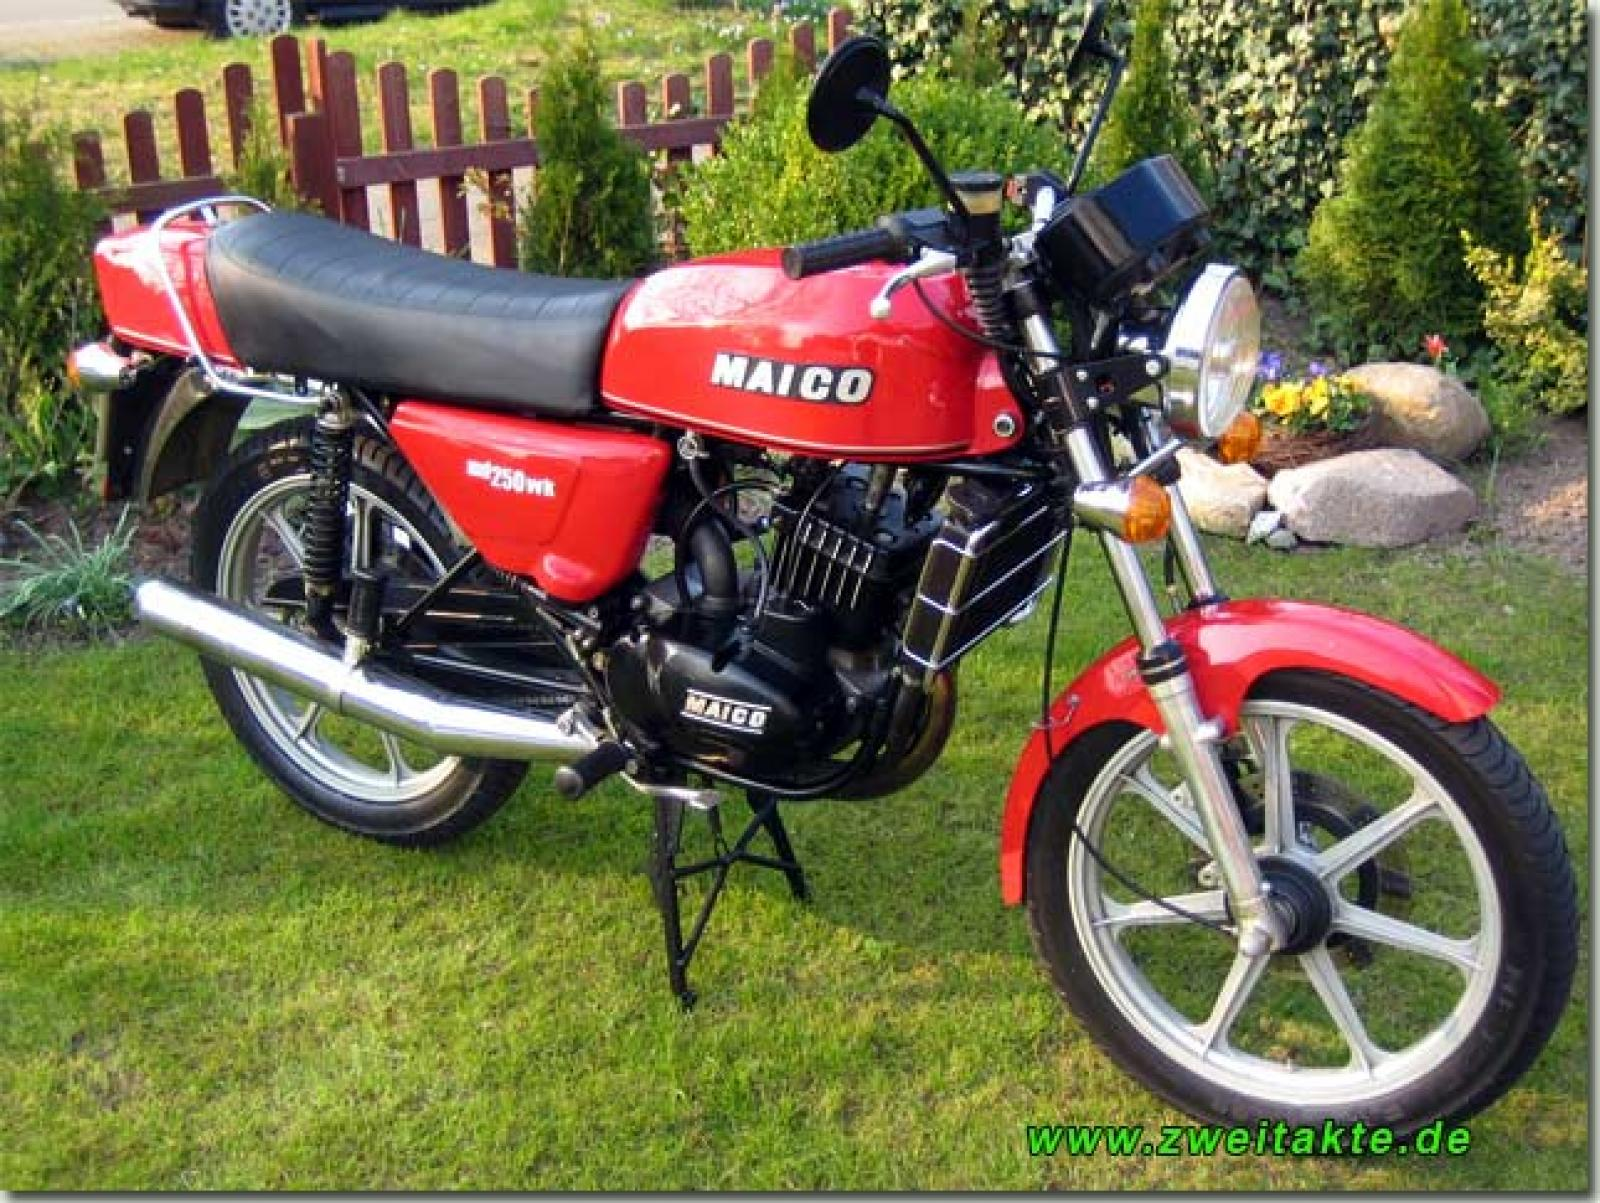 Maico MD 250 WK images #103079